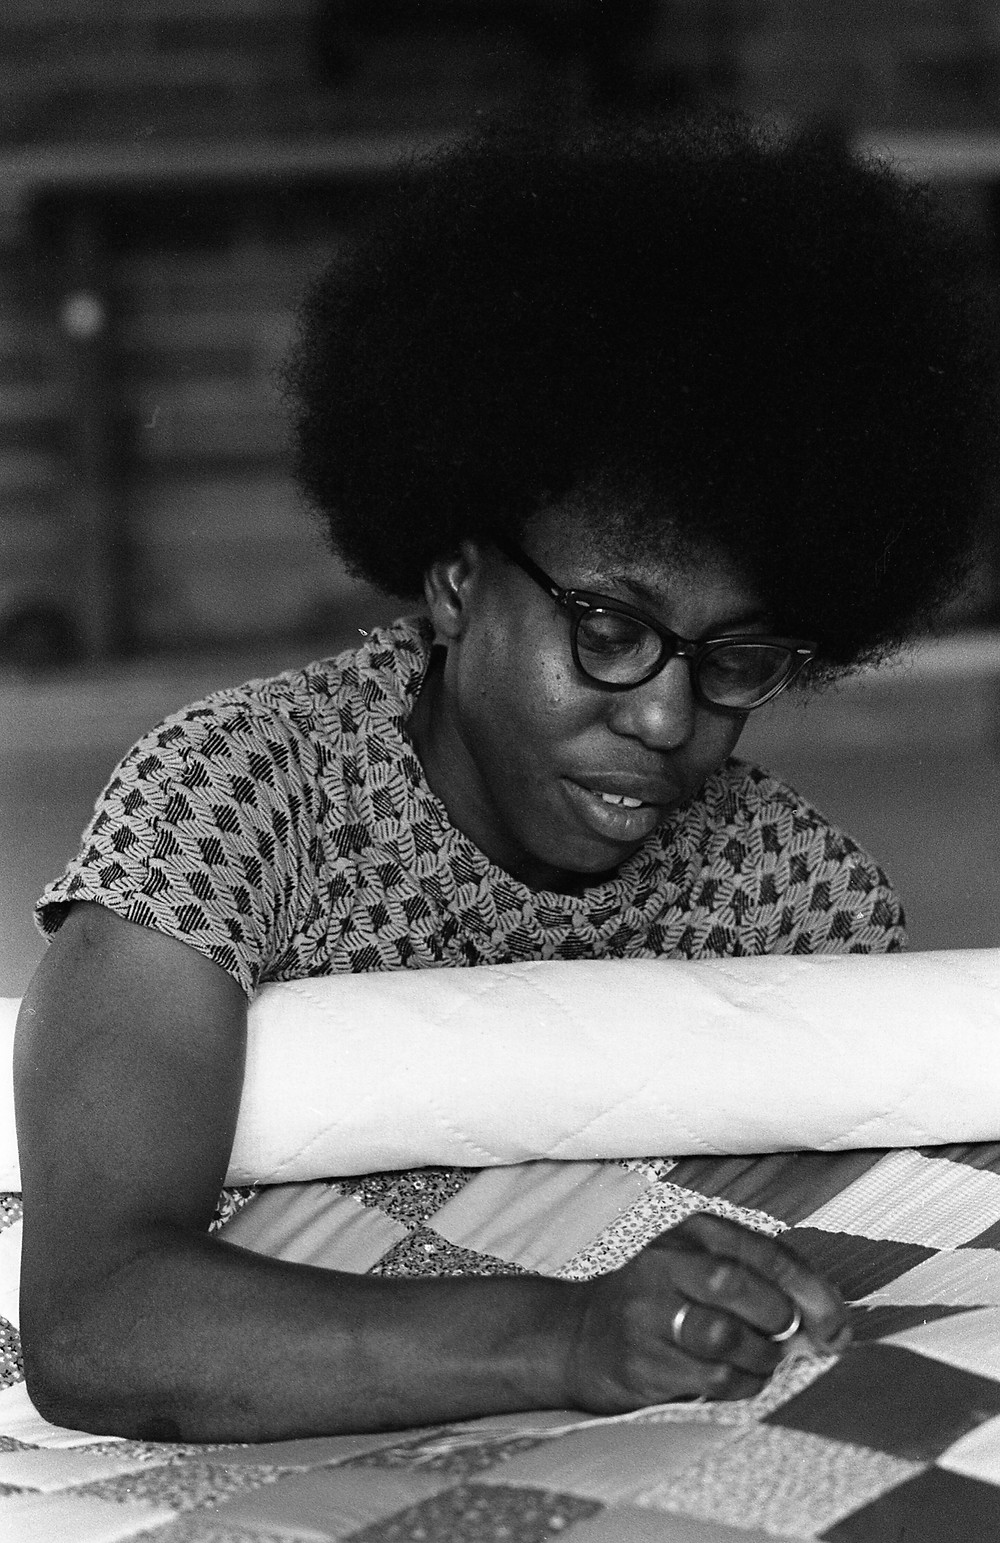 Freedom Quilting Bee, Alberta, Alabama. June 1974. Photograph by Pat Goudvis. Used with permission.